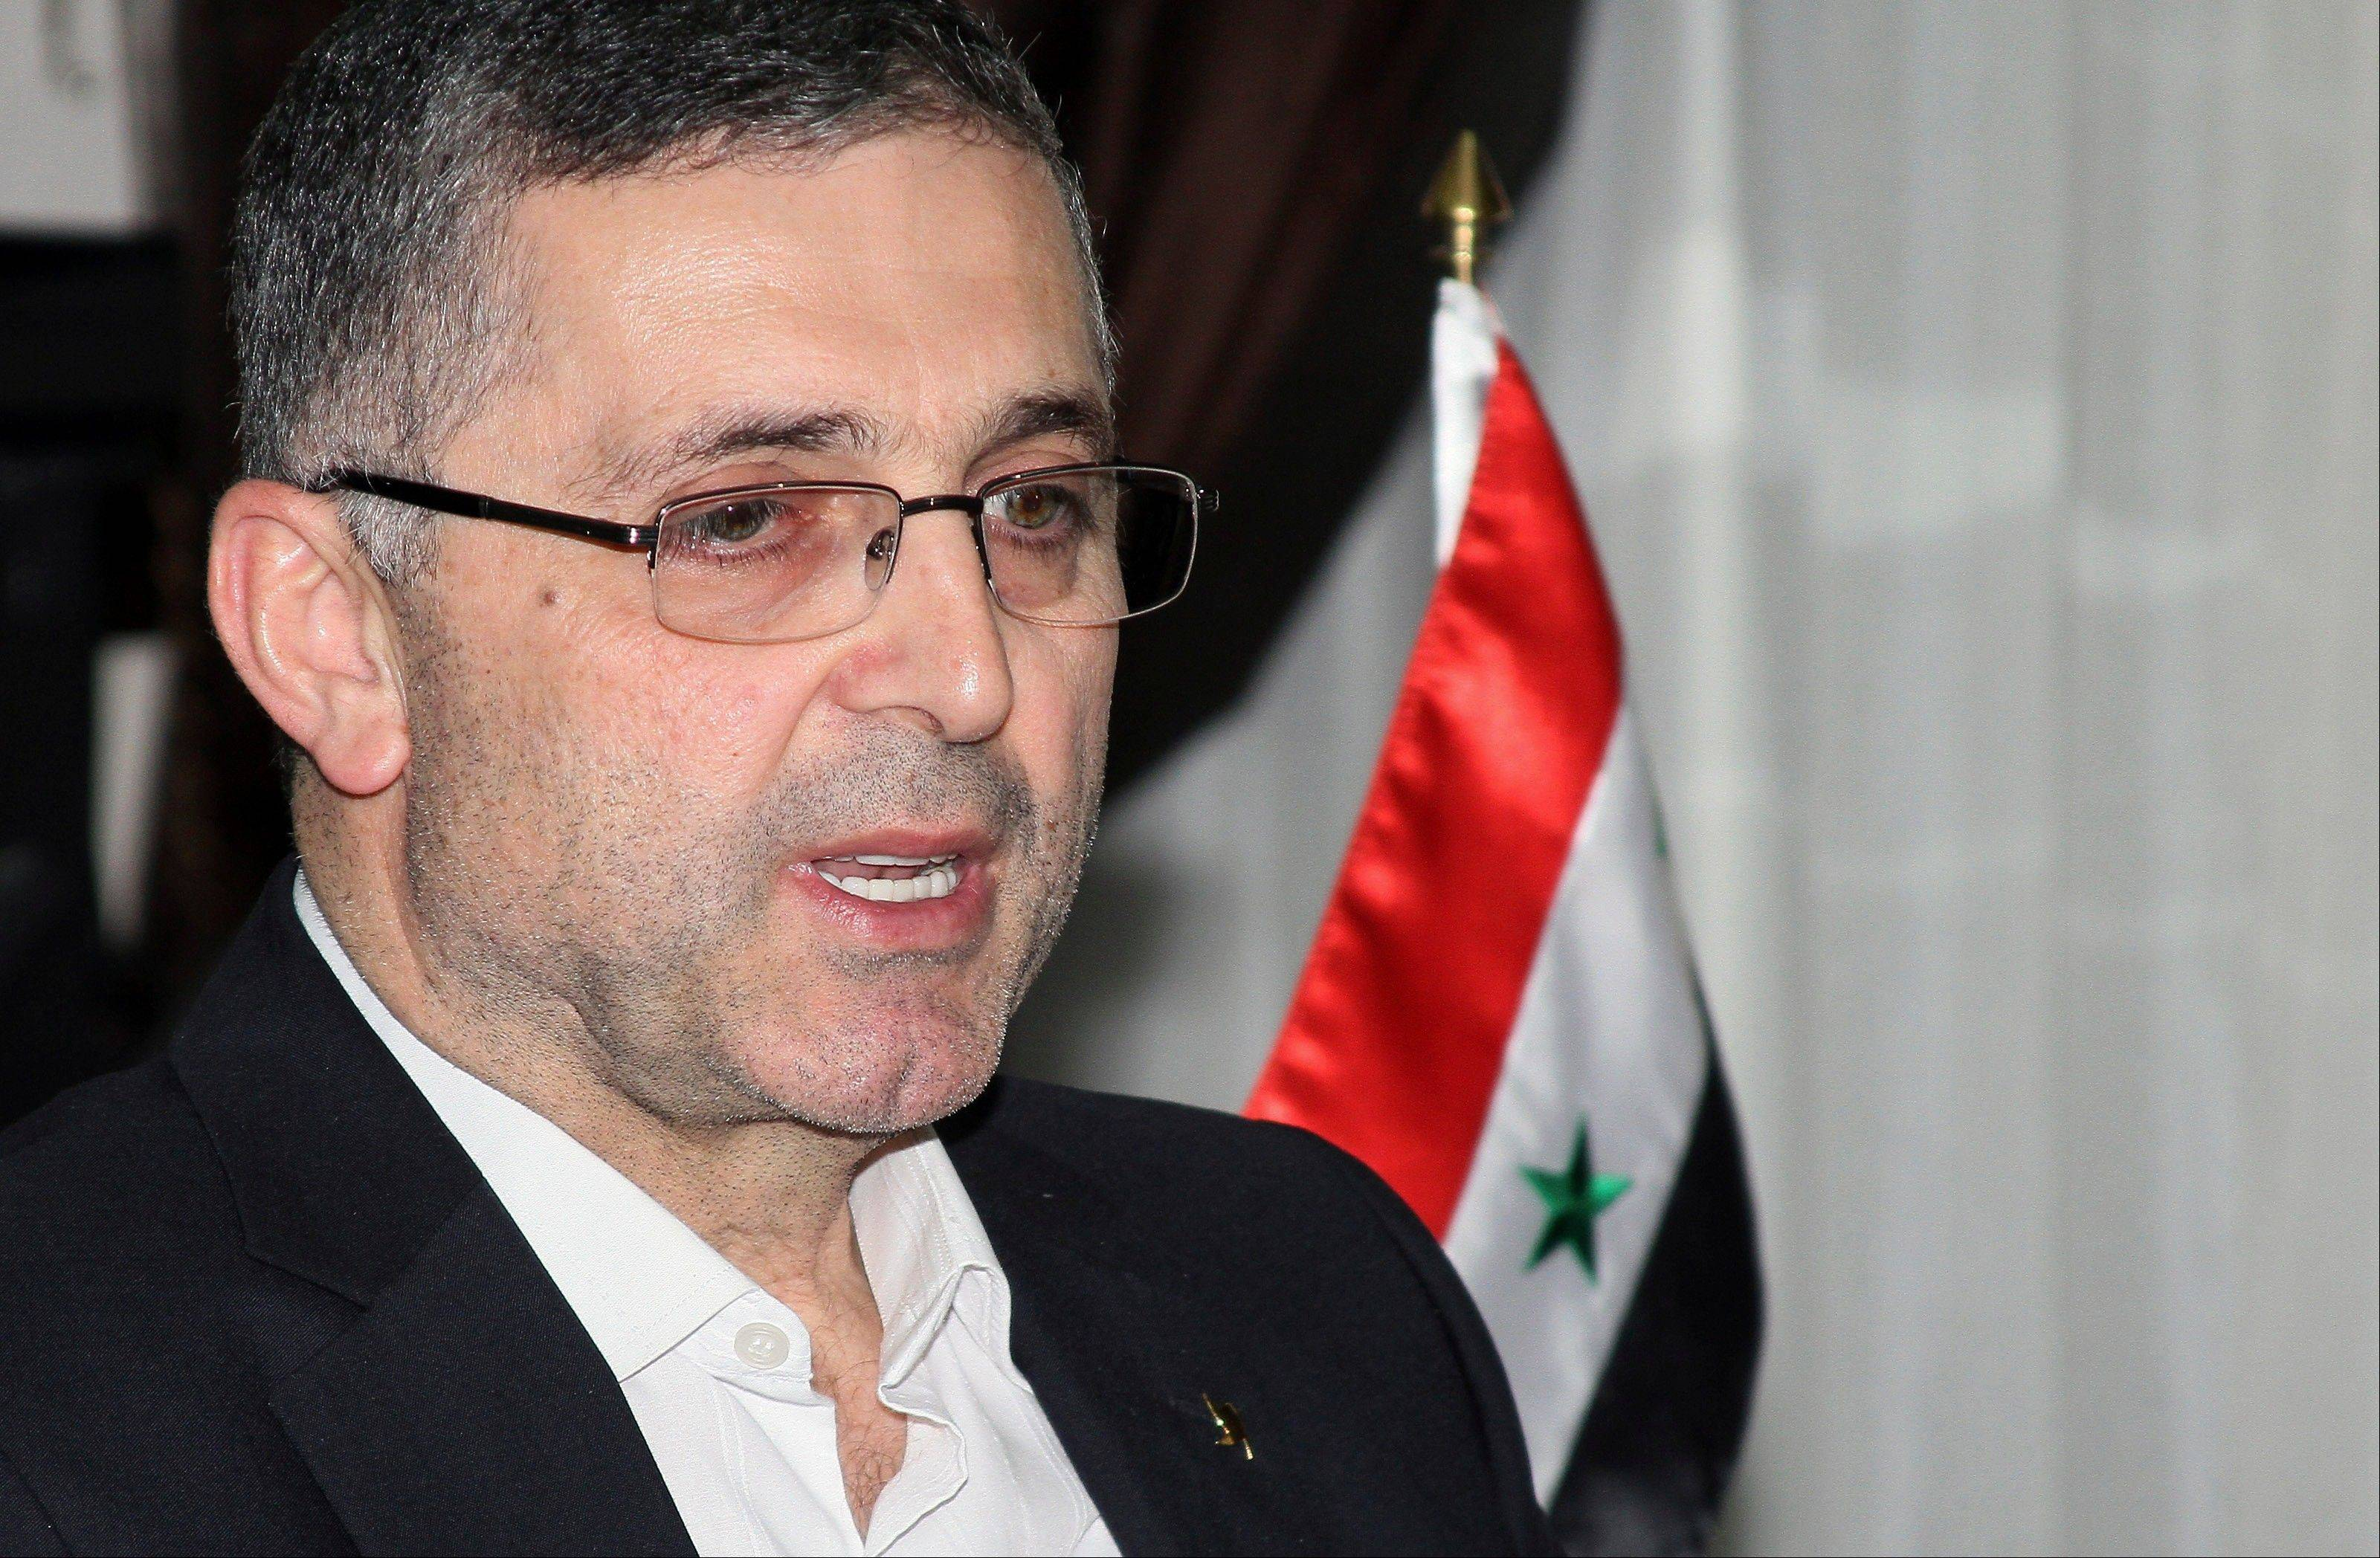 Ali Haidar, the Syrian Minister for Reconciliation Affairs, said Syria's acceptance of a Russian initiative to relinquish its chemical weapons is a sign of strength and that by agreeing to the proposal, Syria has taken away one of the pretexts for war against Syria although he says the threat of foreign military action remains.